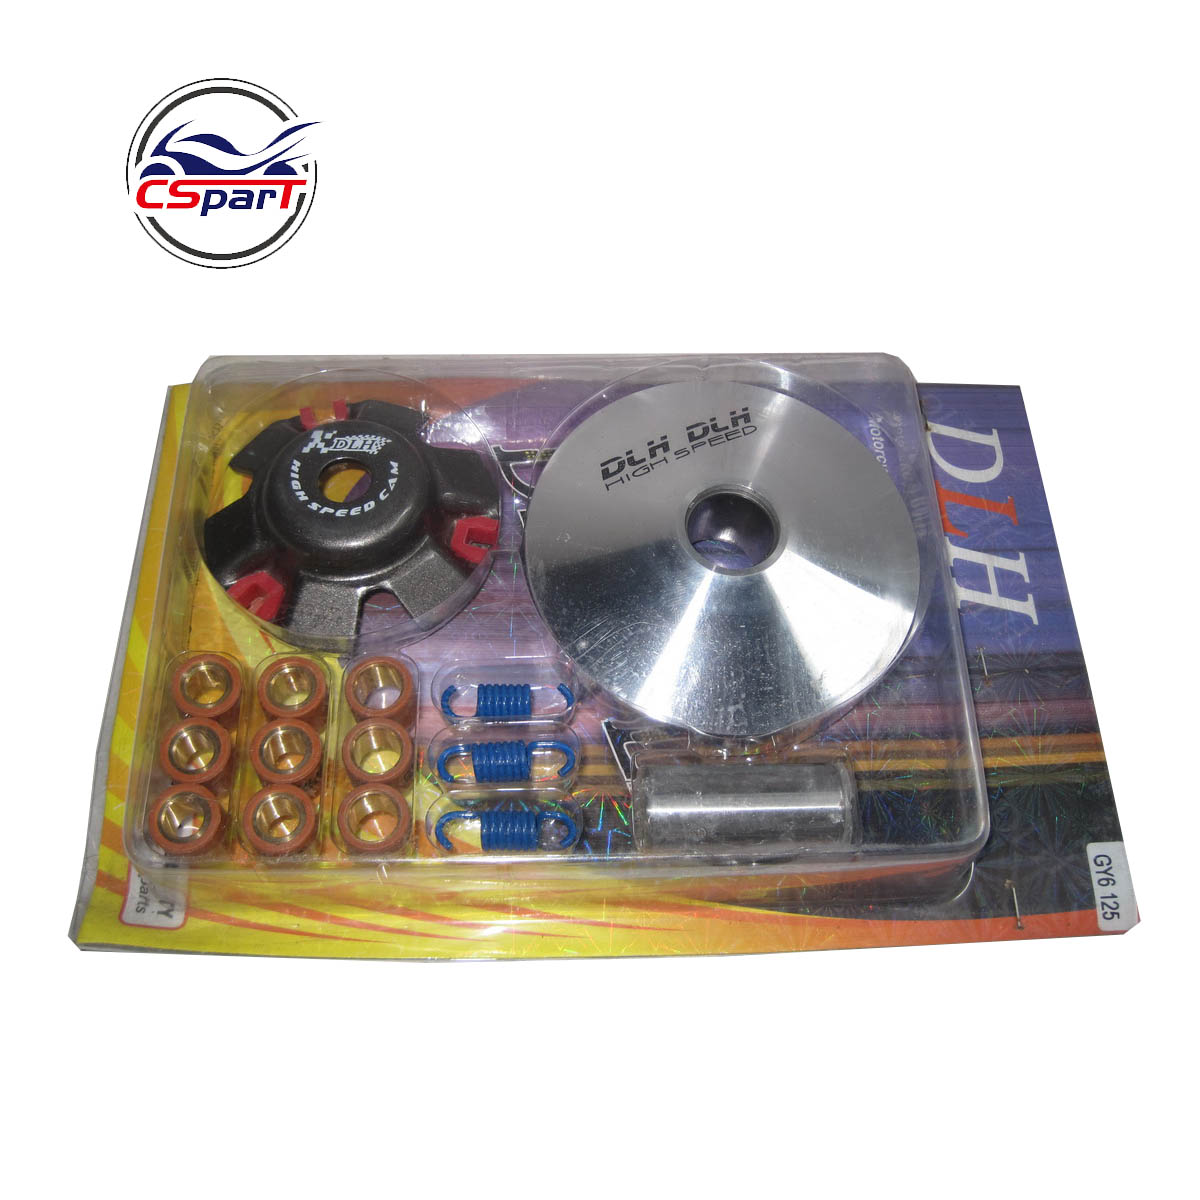 High Performance CVT  Variator Kit with Roller Weights  Drive Pulley for GY6 125cc 150cc 152QMI 157QMJ and Dio Scooter Moped